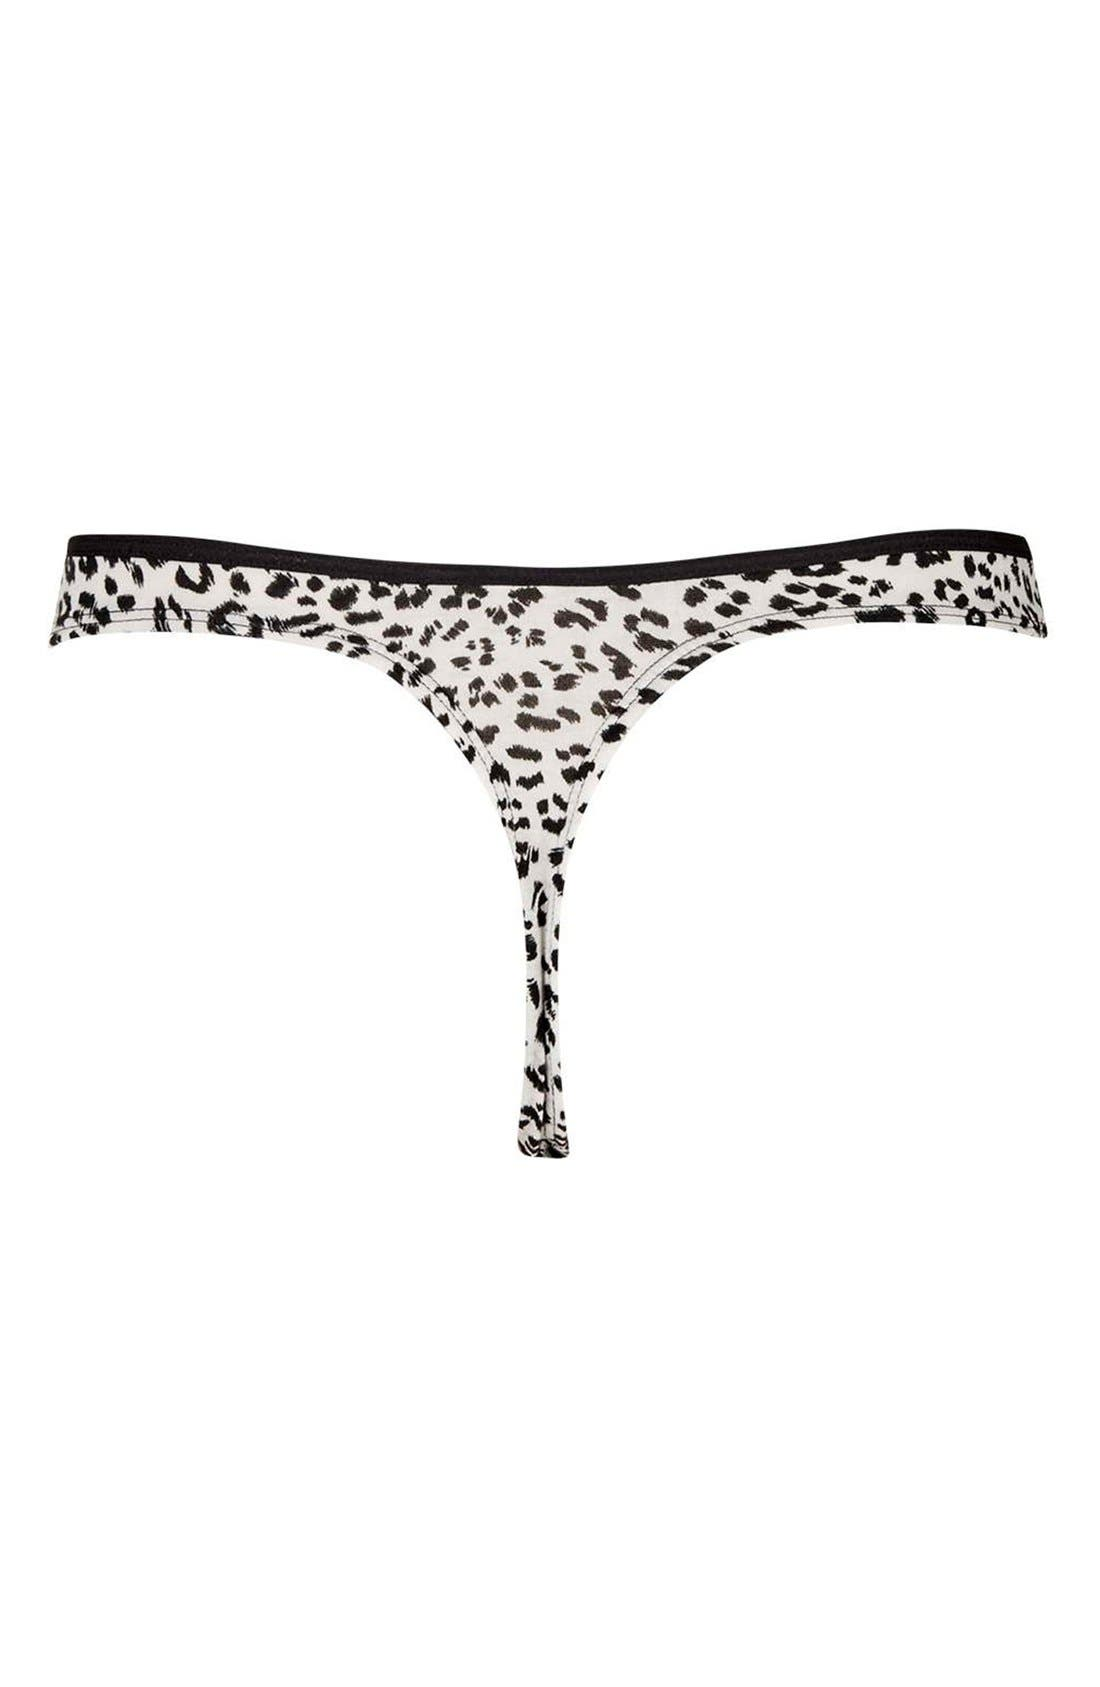 Leopard Print Thong,                             Alternate thumbnail 2, color,                             020